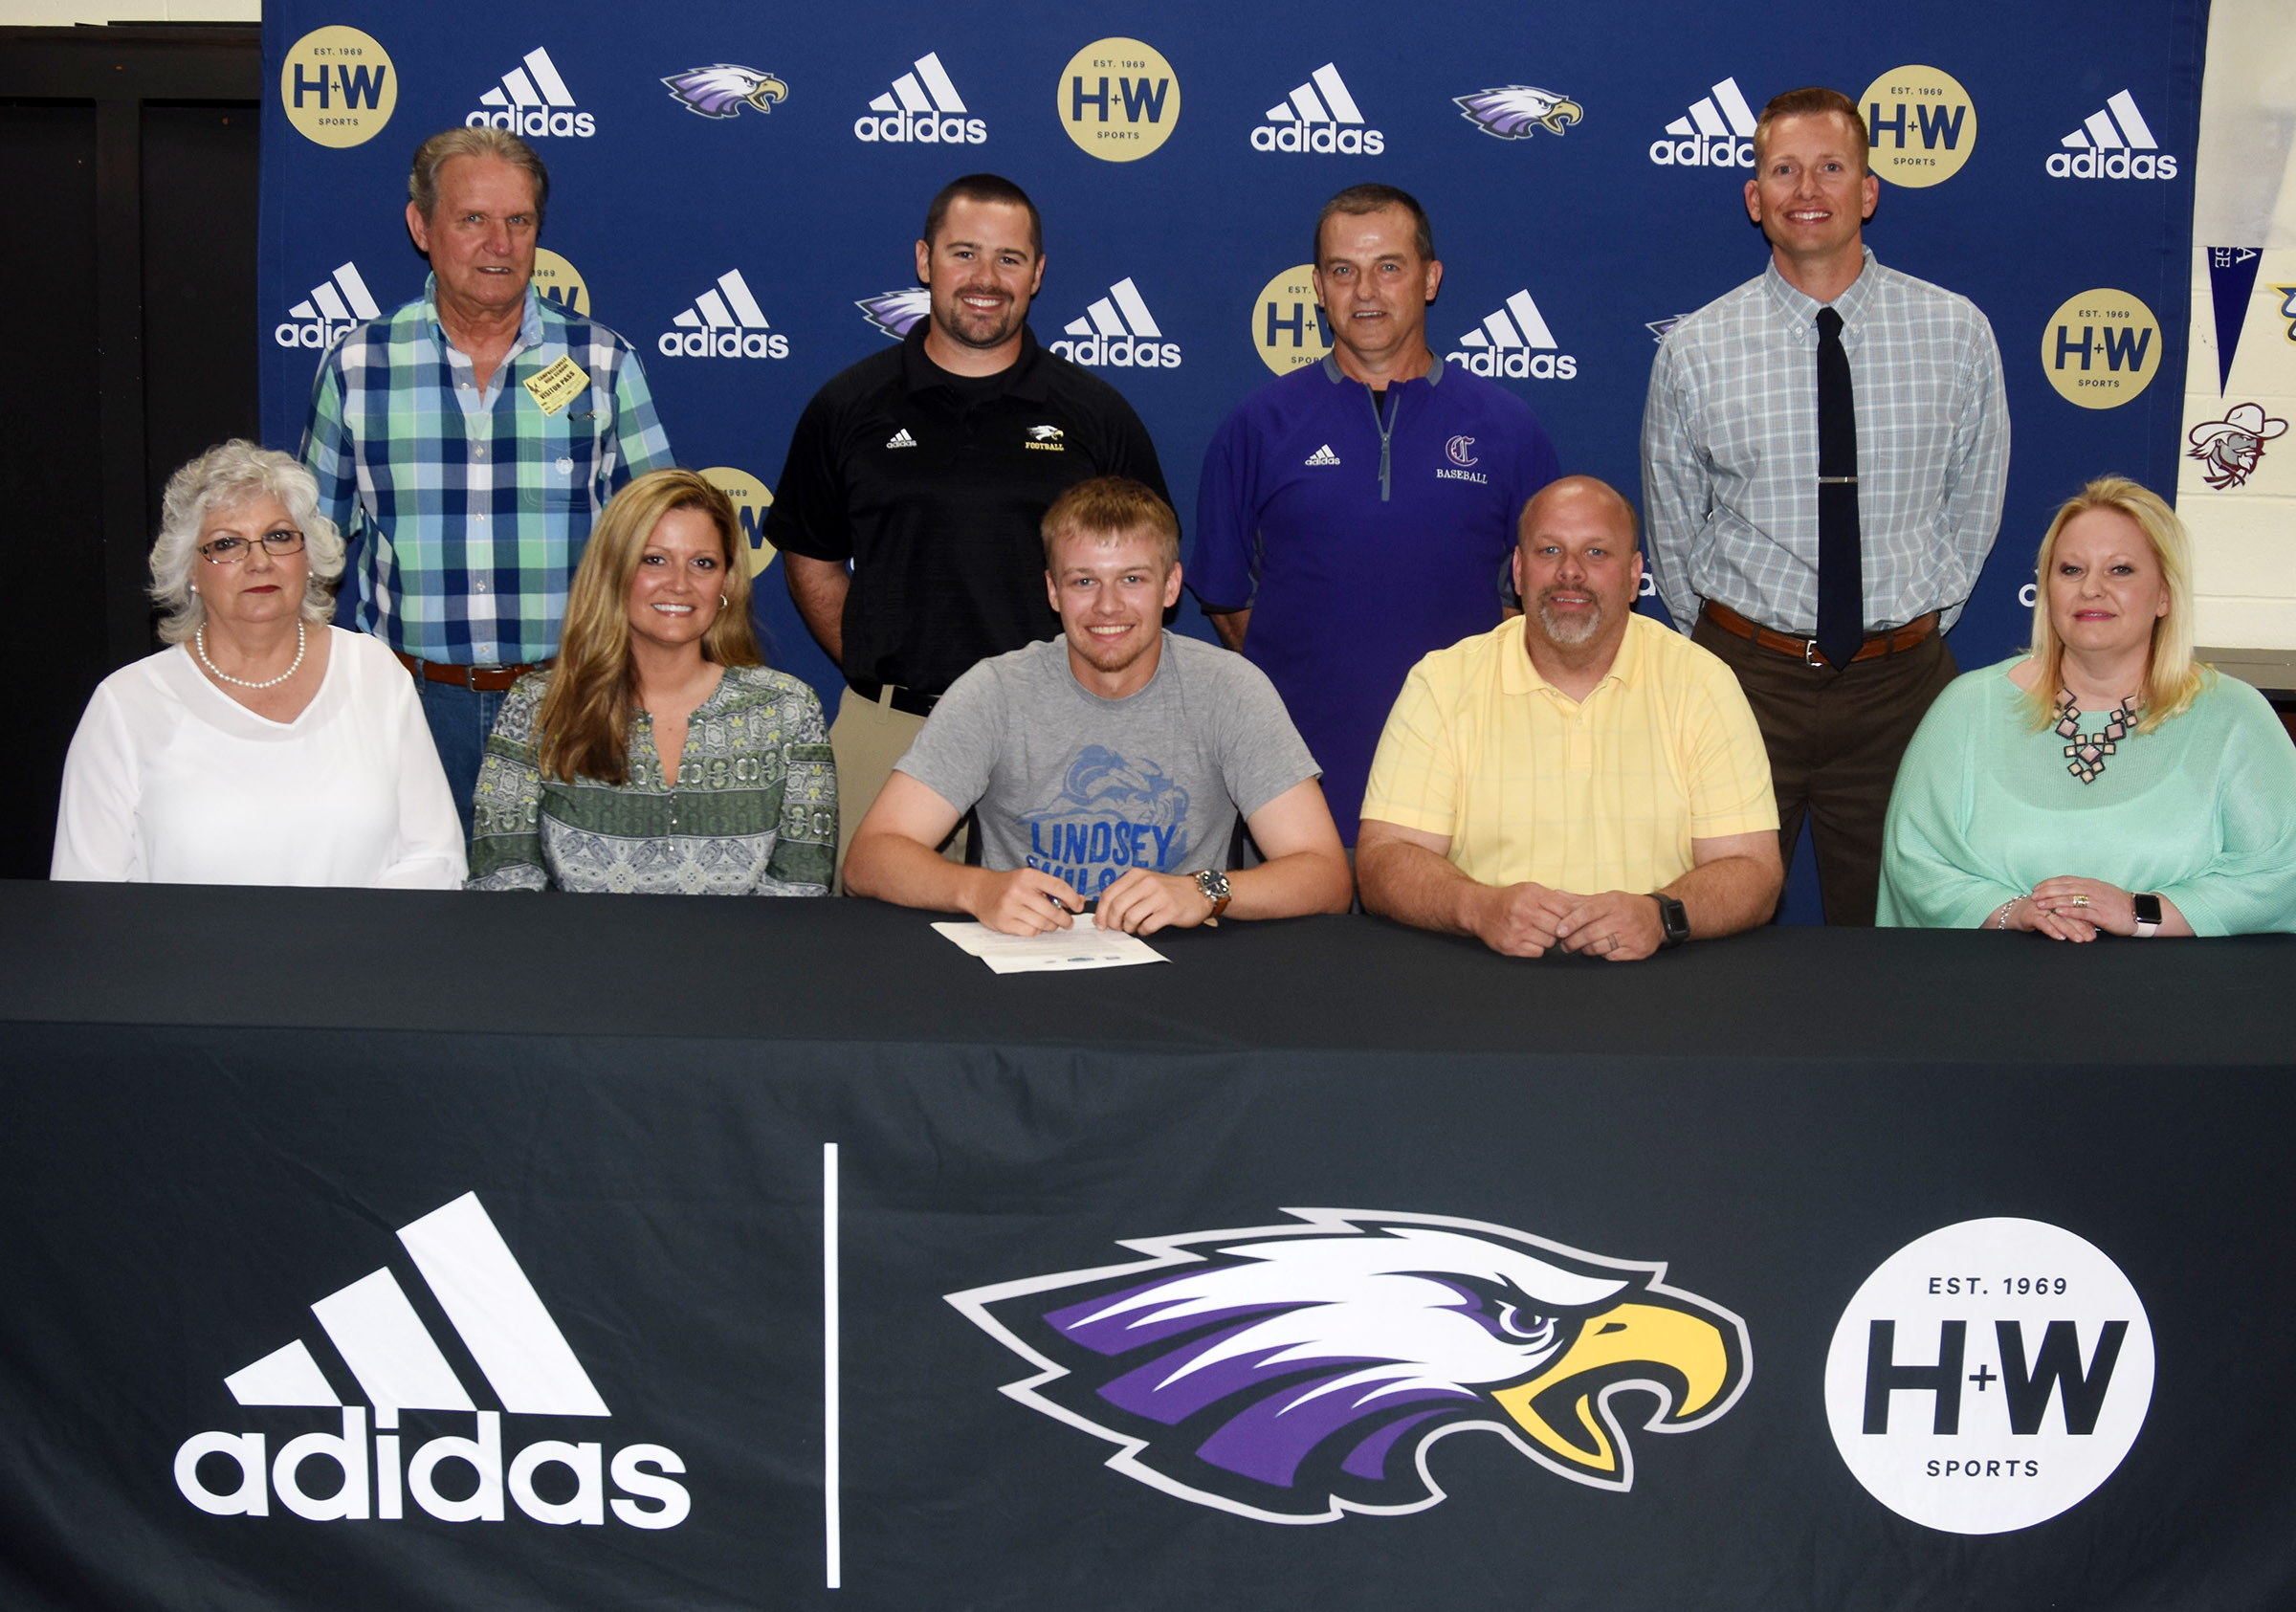 Campbellsville High School senior baseball player Wyatt Houk will continue his academic and athletic career at Lindsey Wilson College. He recently celebrated his signing with his family, friends, teammates and coaches. From left, front, are his grandmother Teresa Morgan, his mother Kristie Graybeal, Houk, his father Josh Houk and stepmother Brooke Houk. In back are his grandfather Steve Morgan, CHS baseball head coach Blake Milby and assistant coaches Lynn Kearney and Zach Lewis. Not pictured is Houk's stepfather Chris Graybeal.